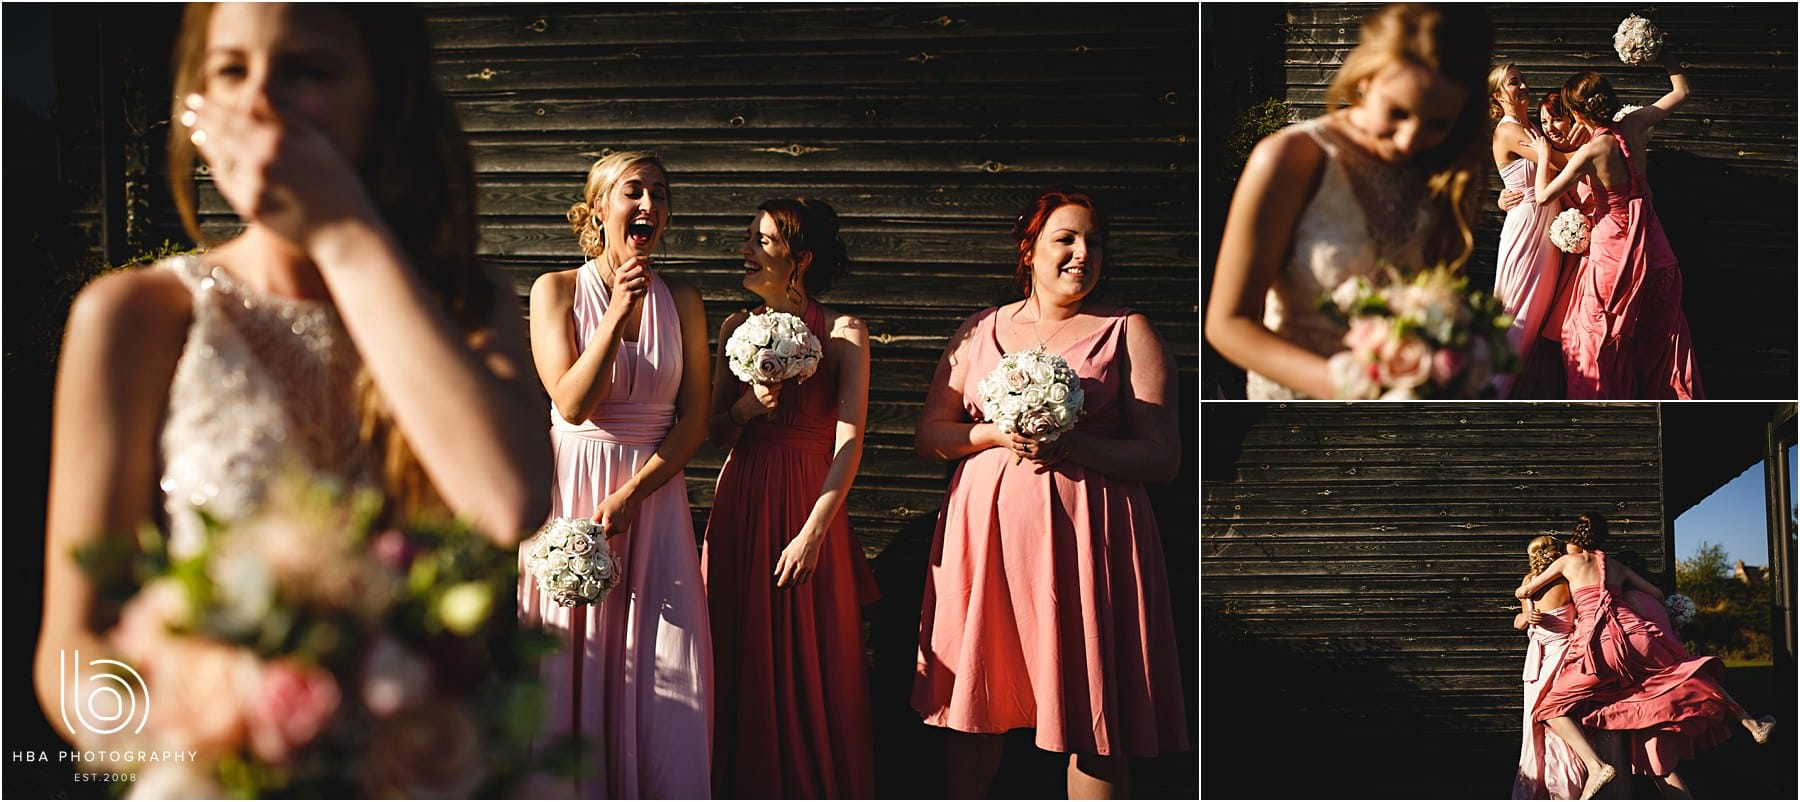 the bride and her bridesmaids laughing